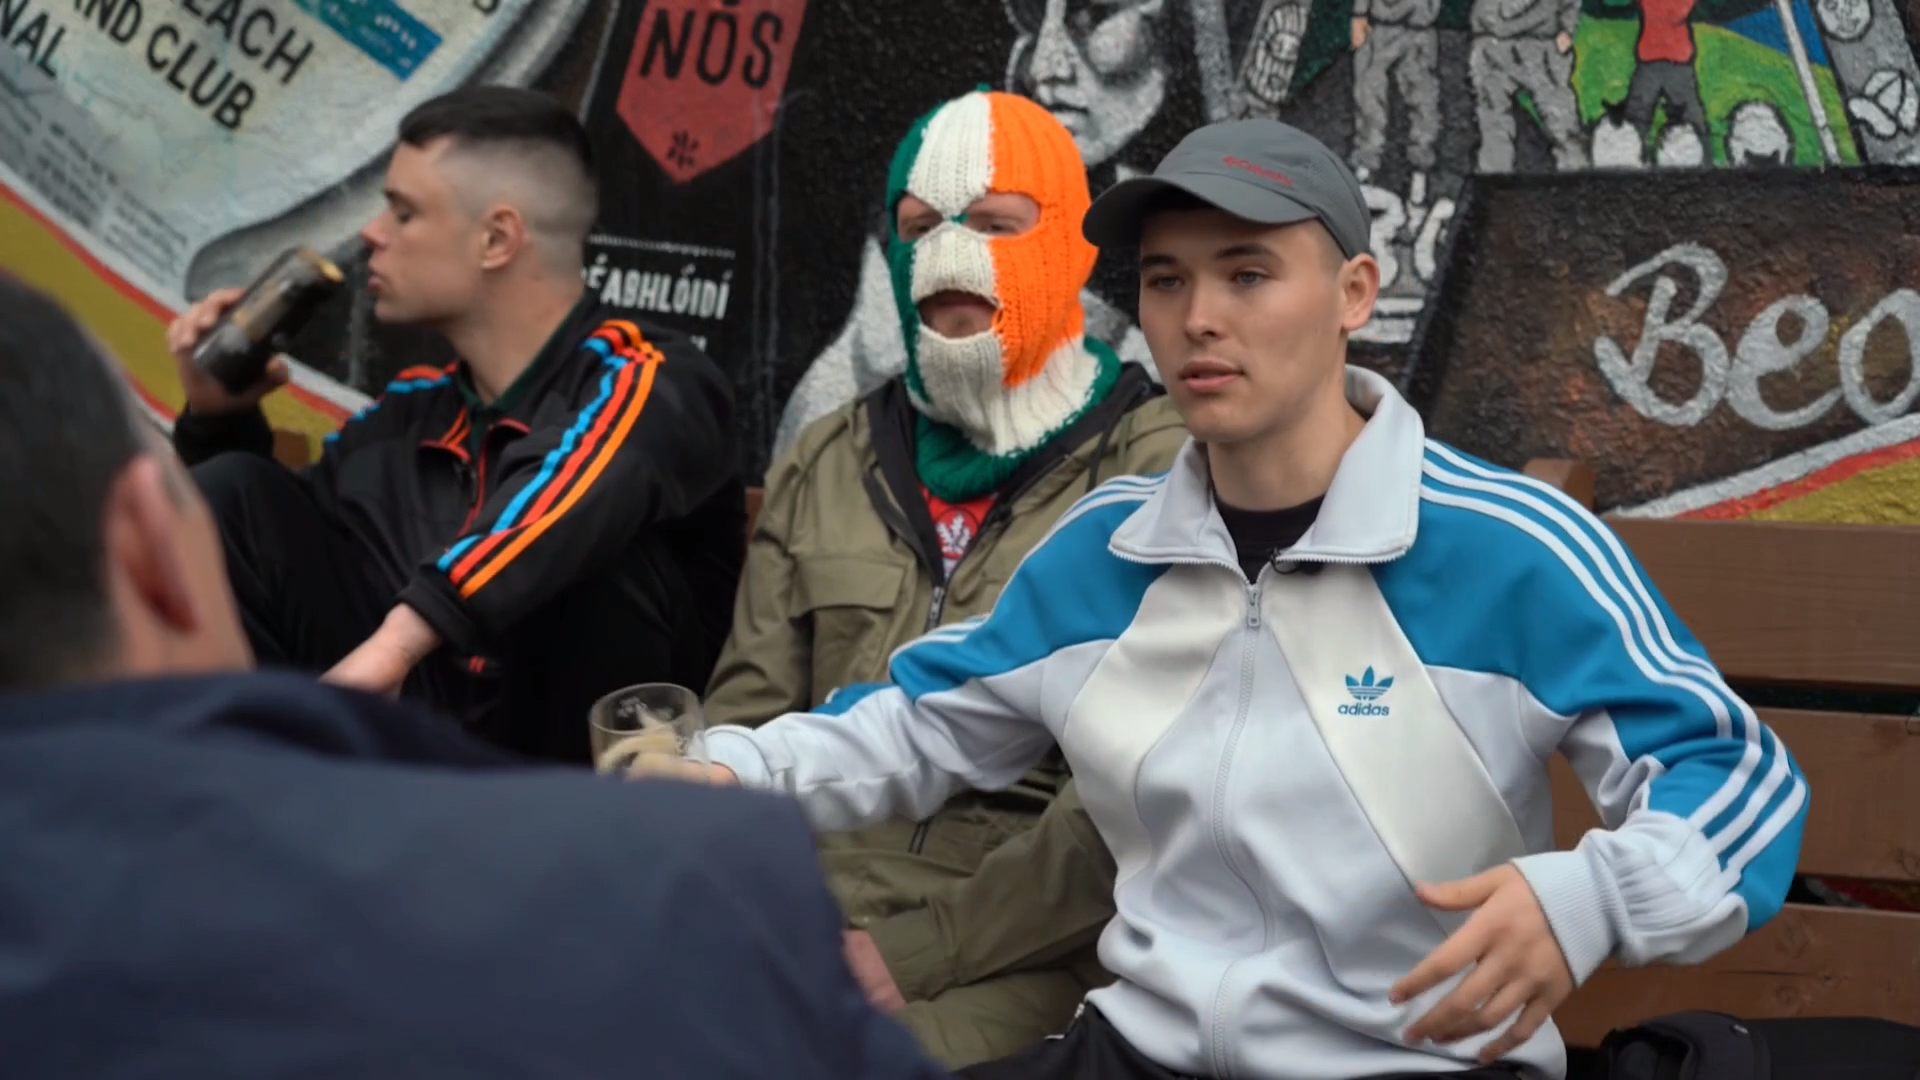 100 years on: where do the allegiances of Northern Ireland's young Catholics lie?